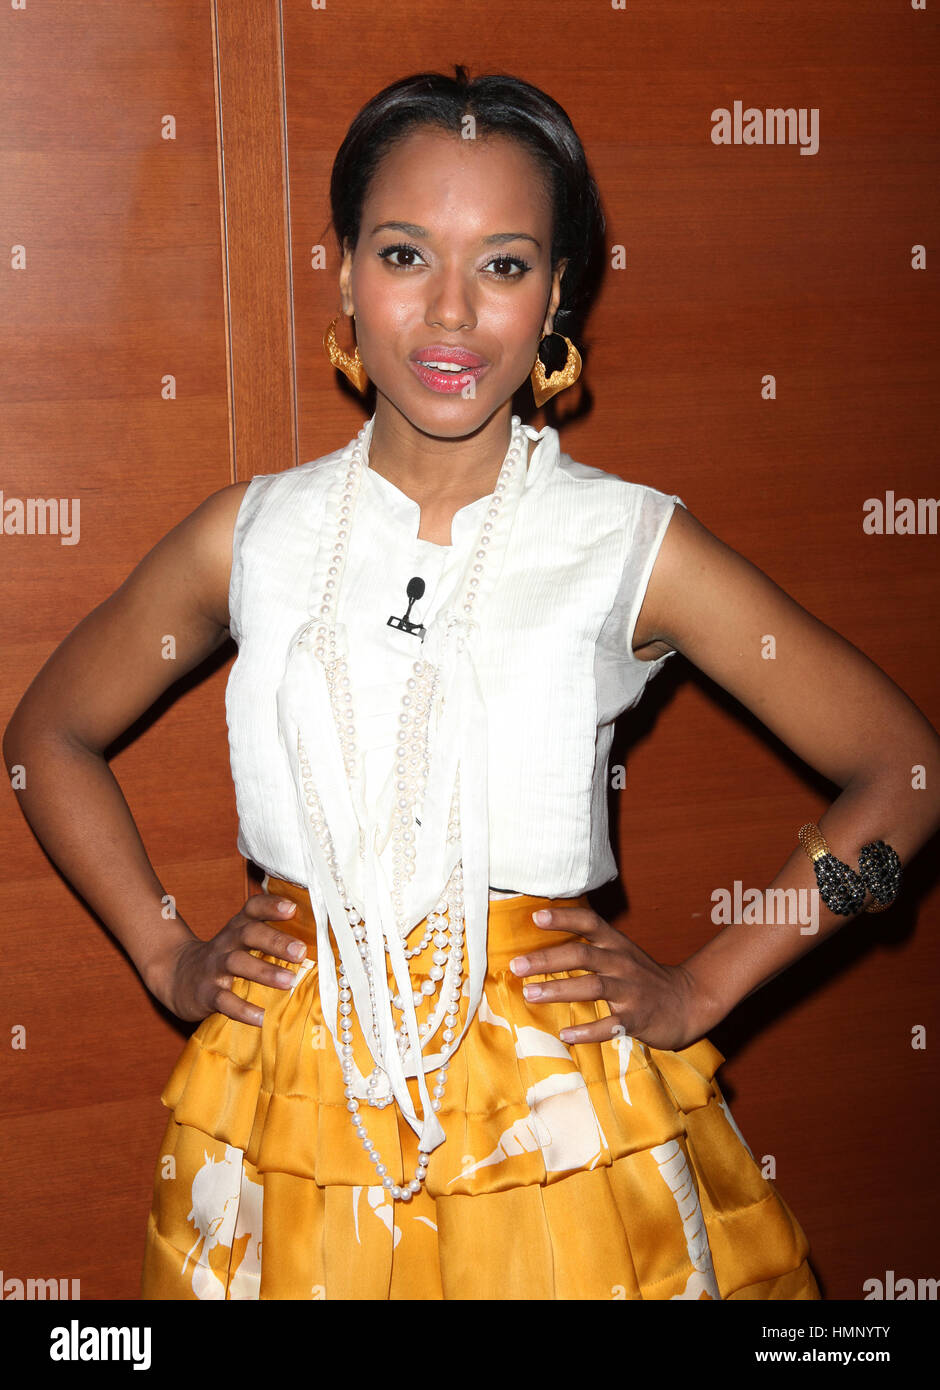 """Kerry Washington attending the New York Times TimesTalk Event """"An Evening with Neil LaBute and Friends"""" at the New Stock Photo"""